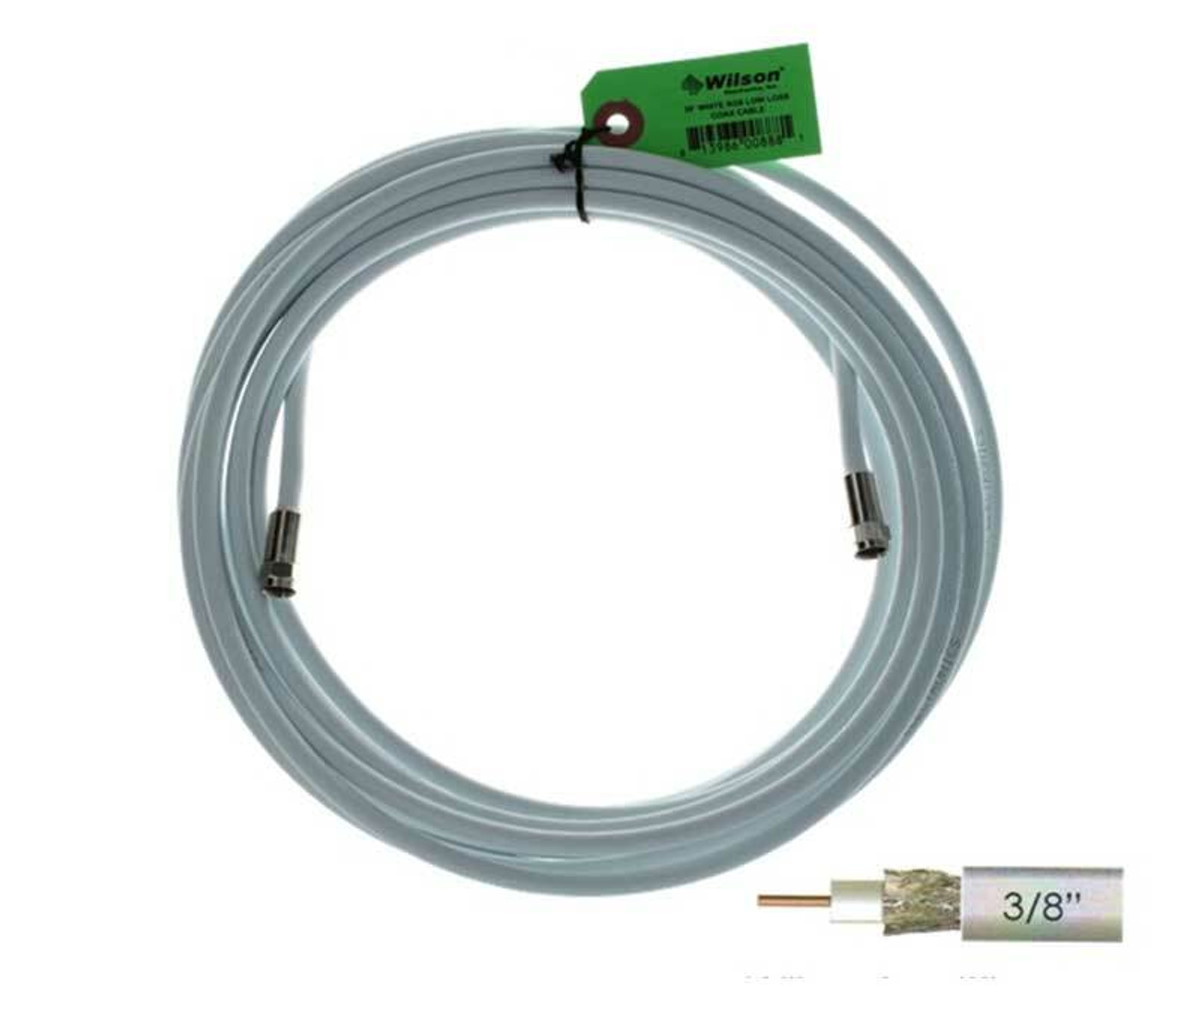 Wilson Electronics weBoost Wilson 950630 RG6 F-Male to F-Male or 30 ft White Cable